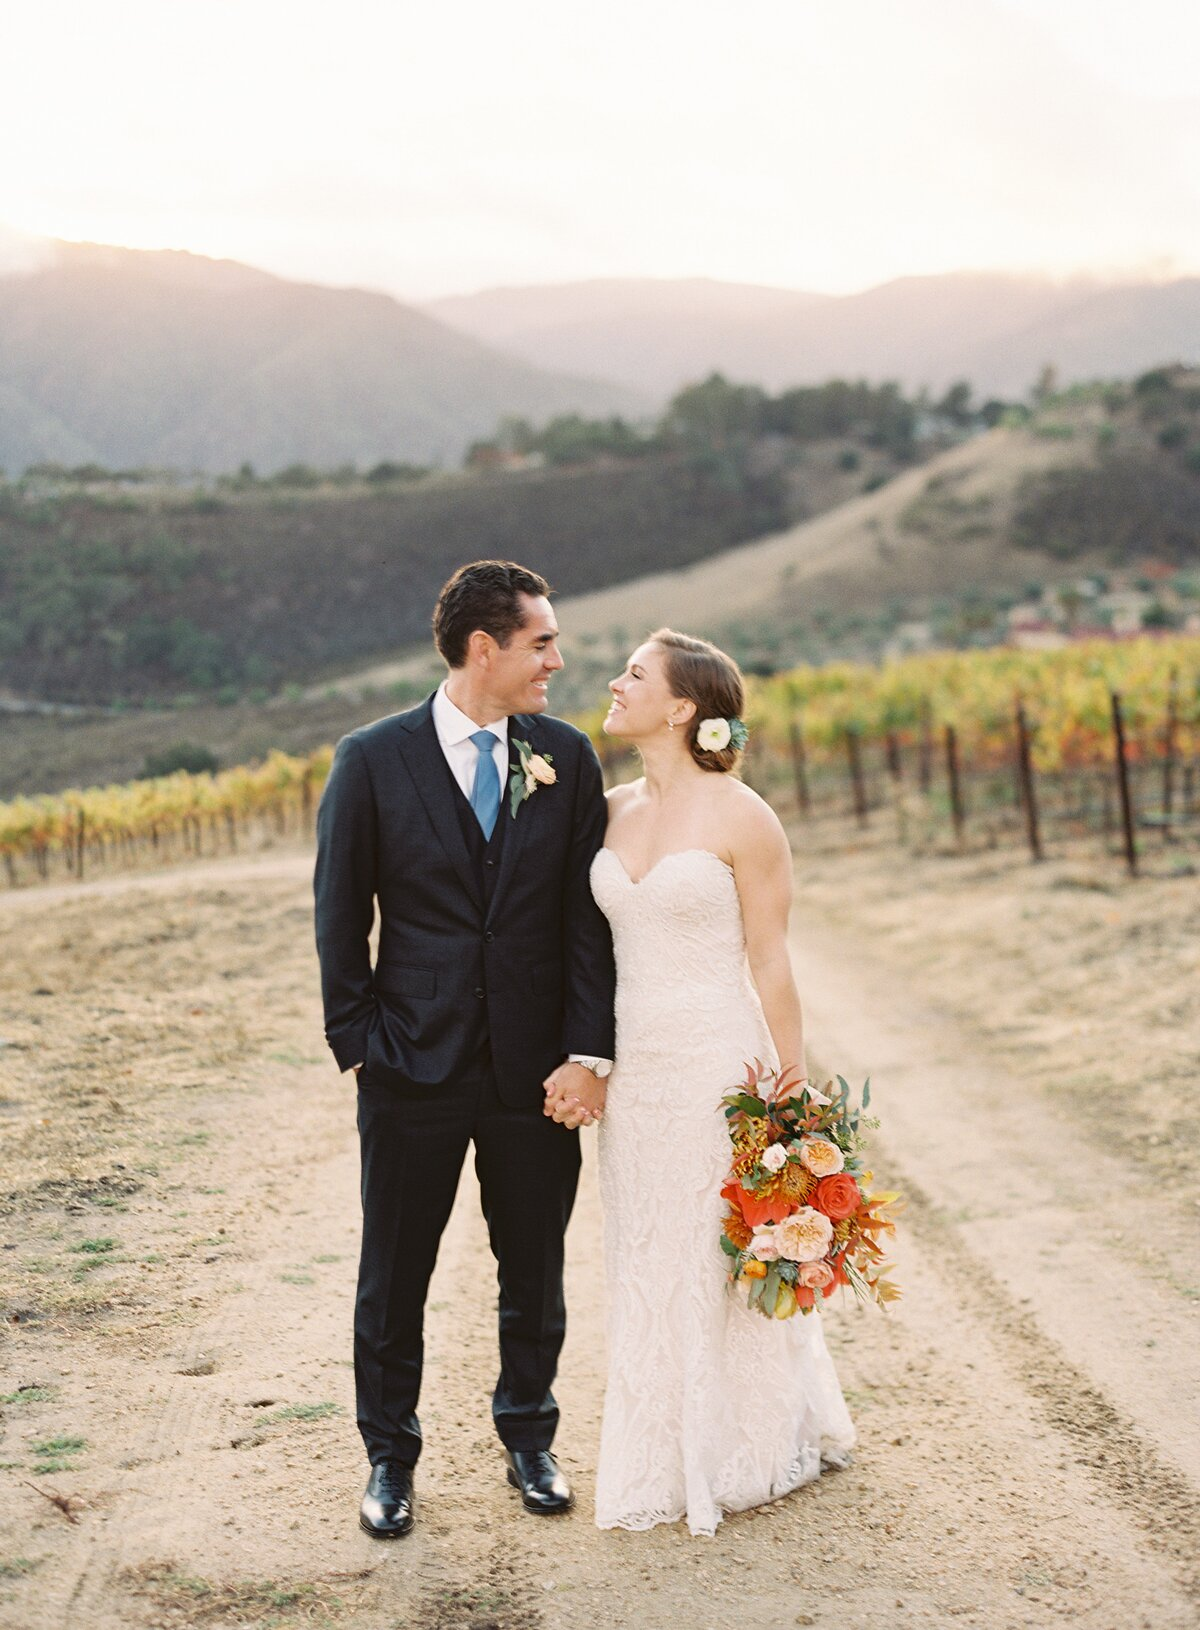 A Vibrant Fall Wedding On A California Ranch Martha Stewart Weddings